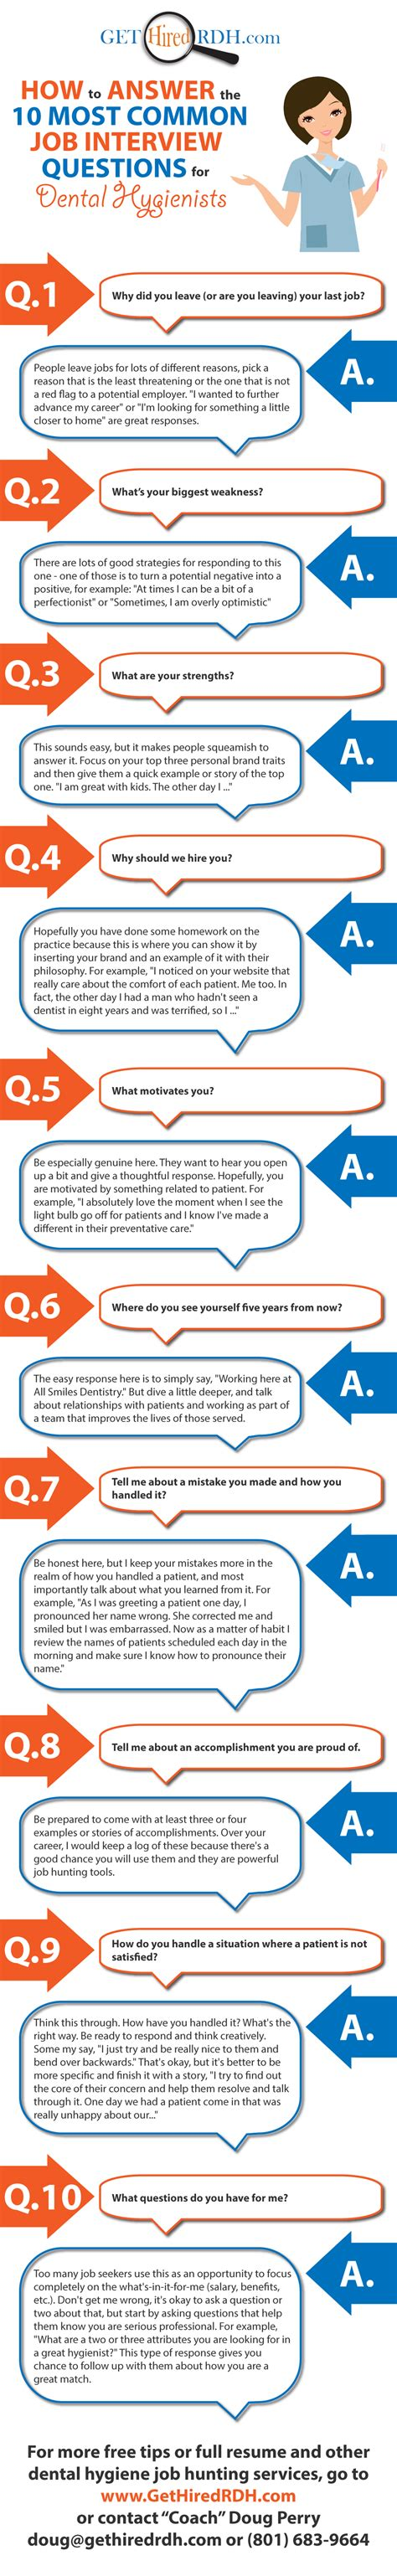 top job interview questions with answers repin to your friends and